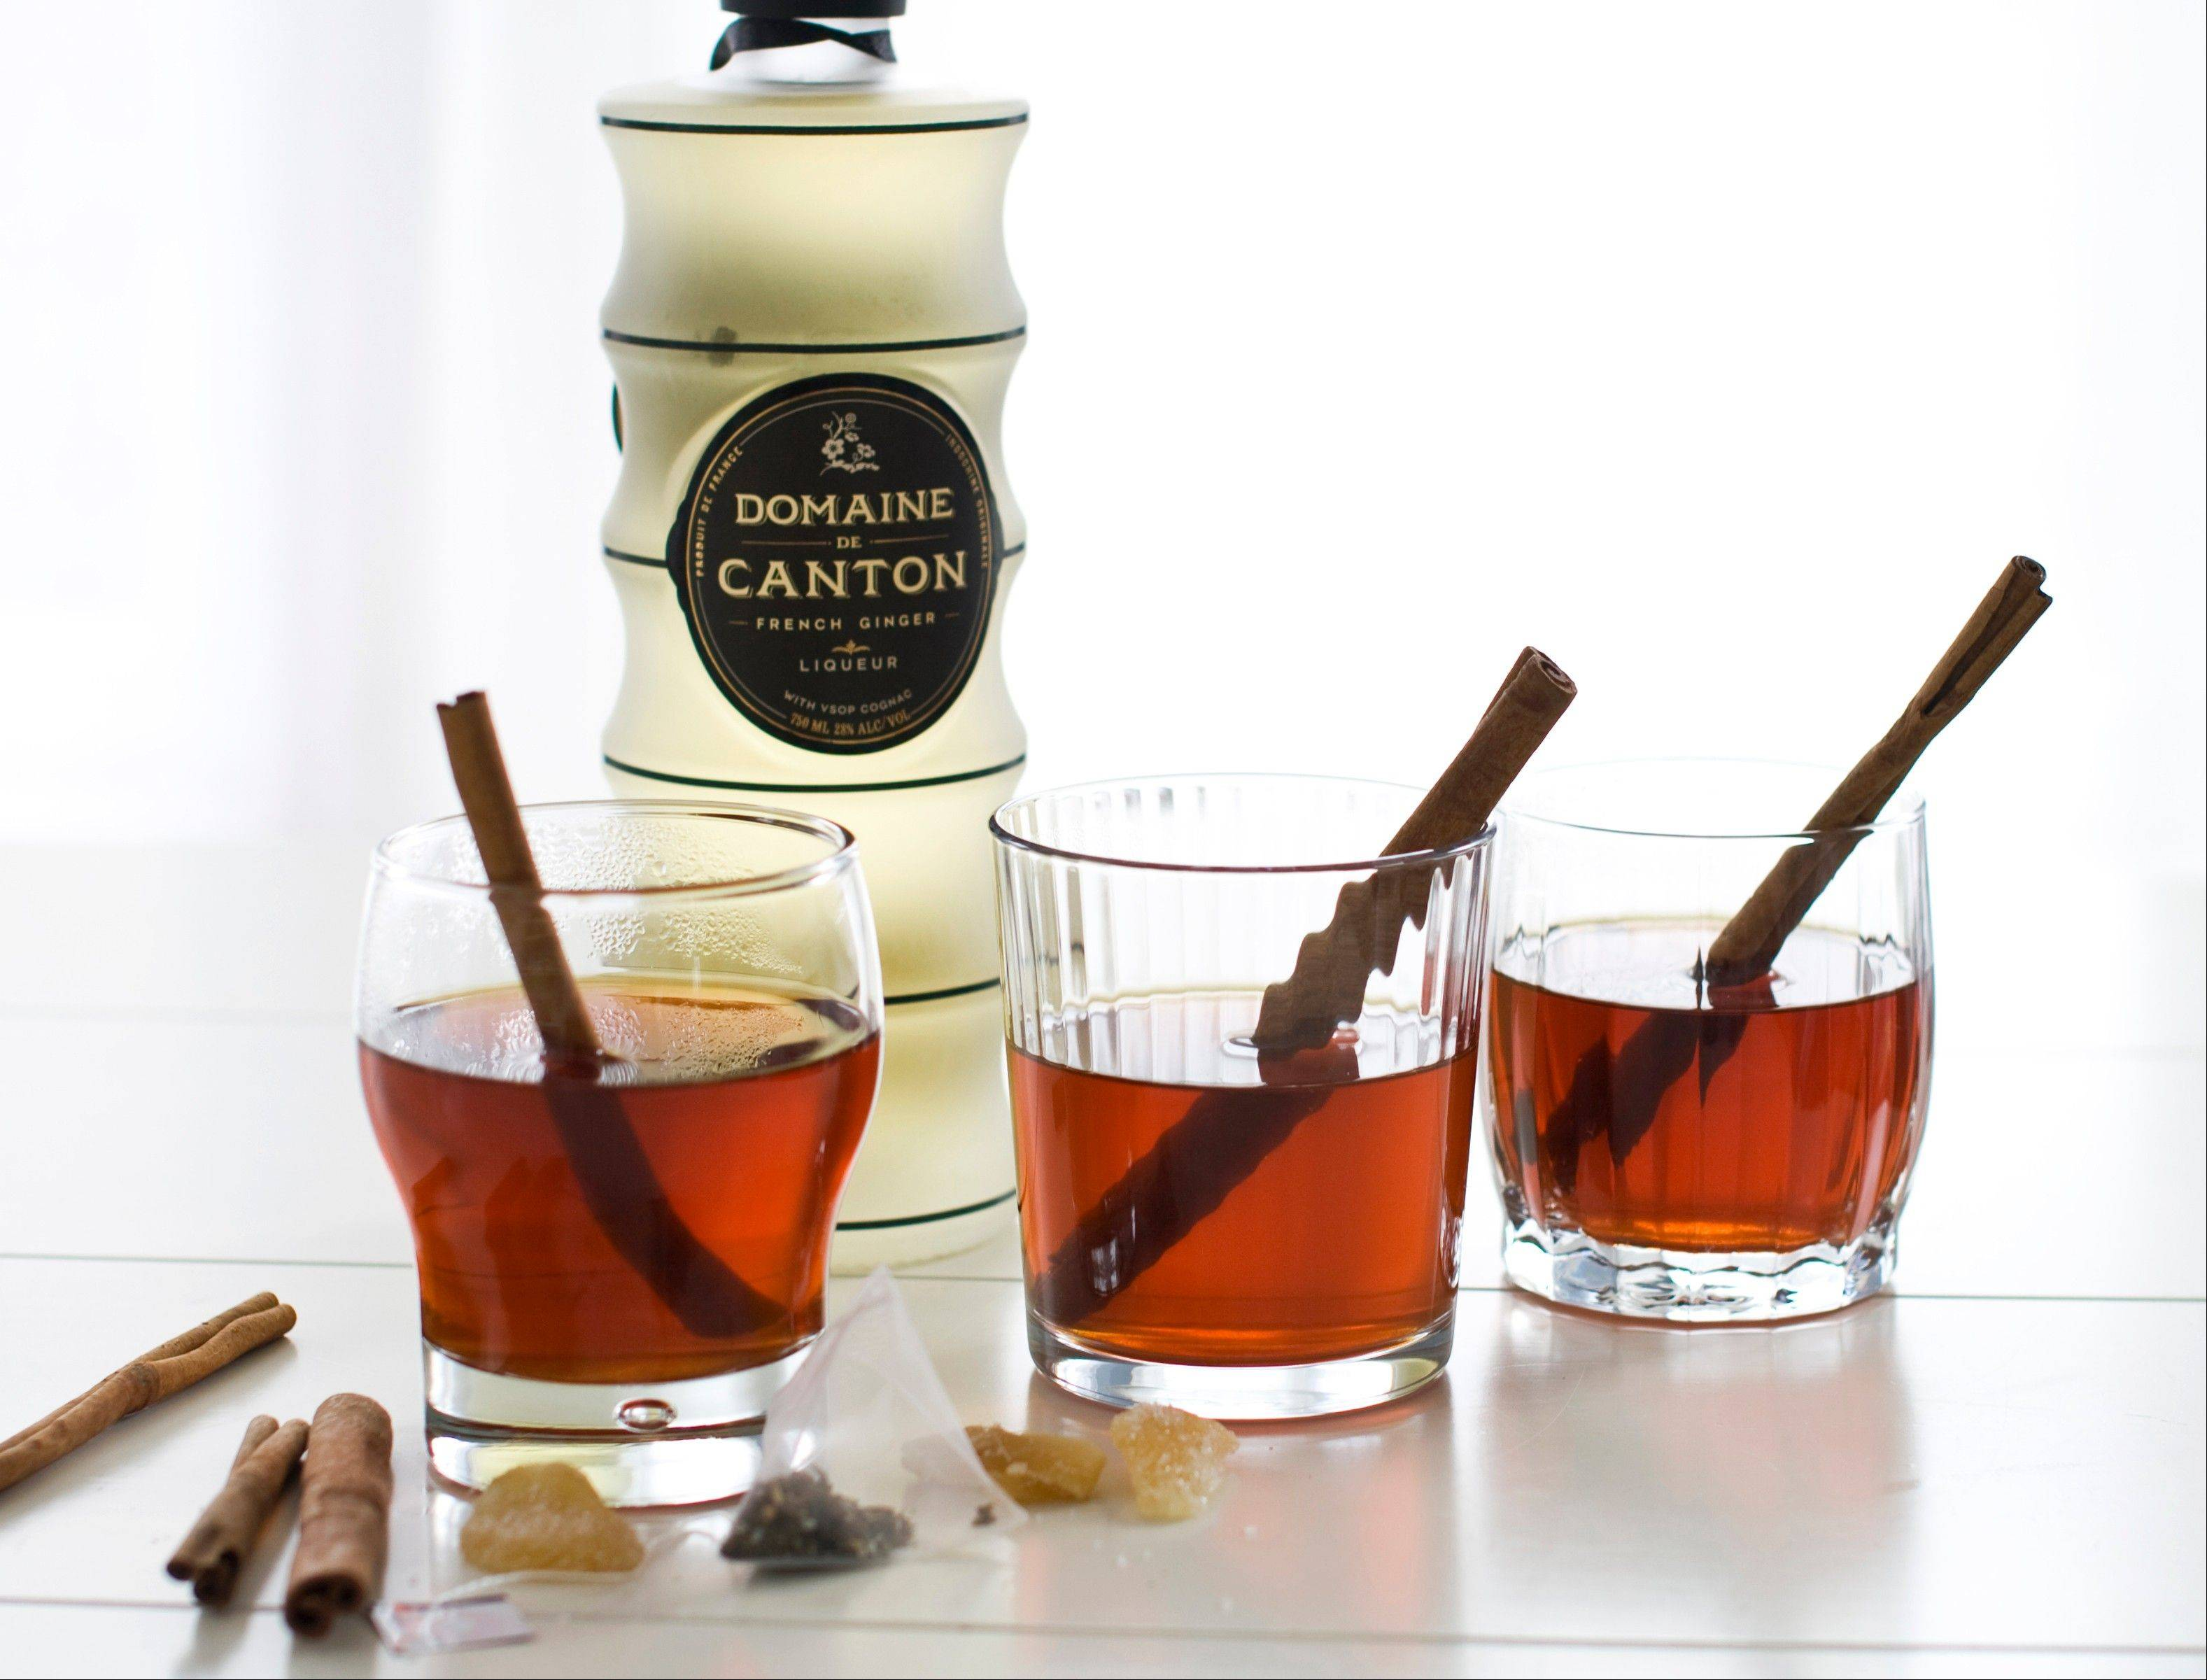 Canton, a French ginger liqueur, is served in cinnamon tea.